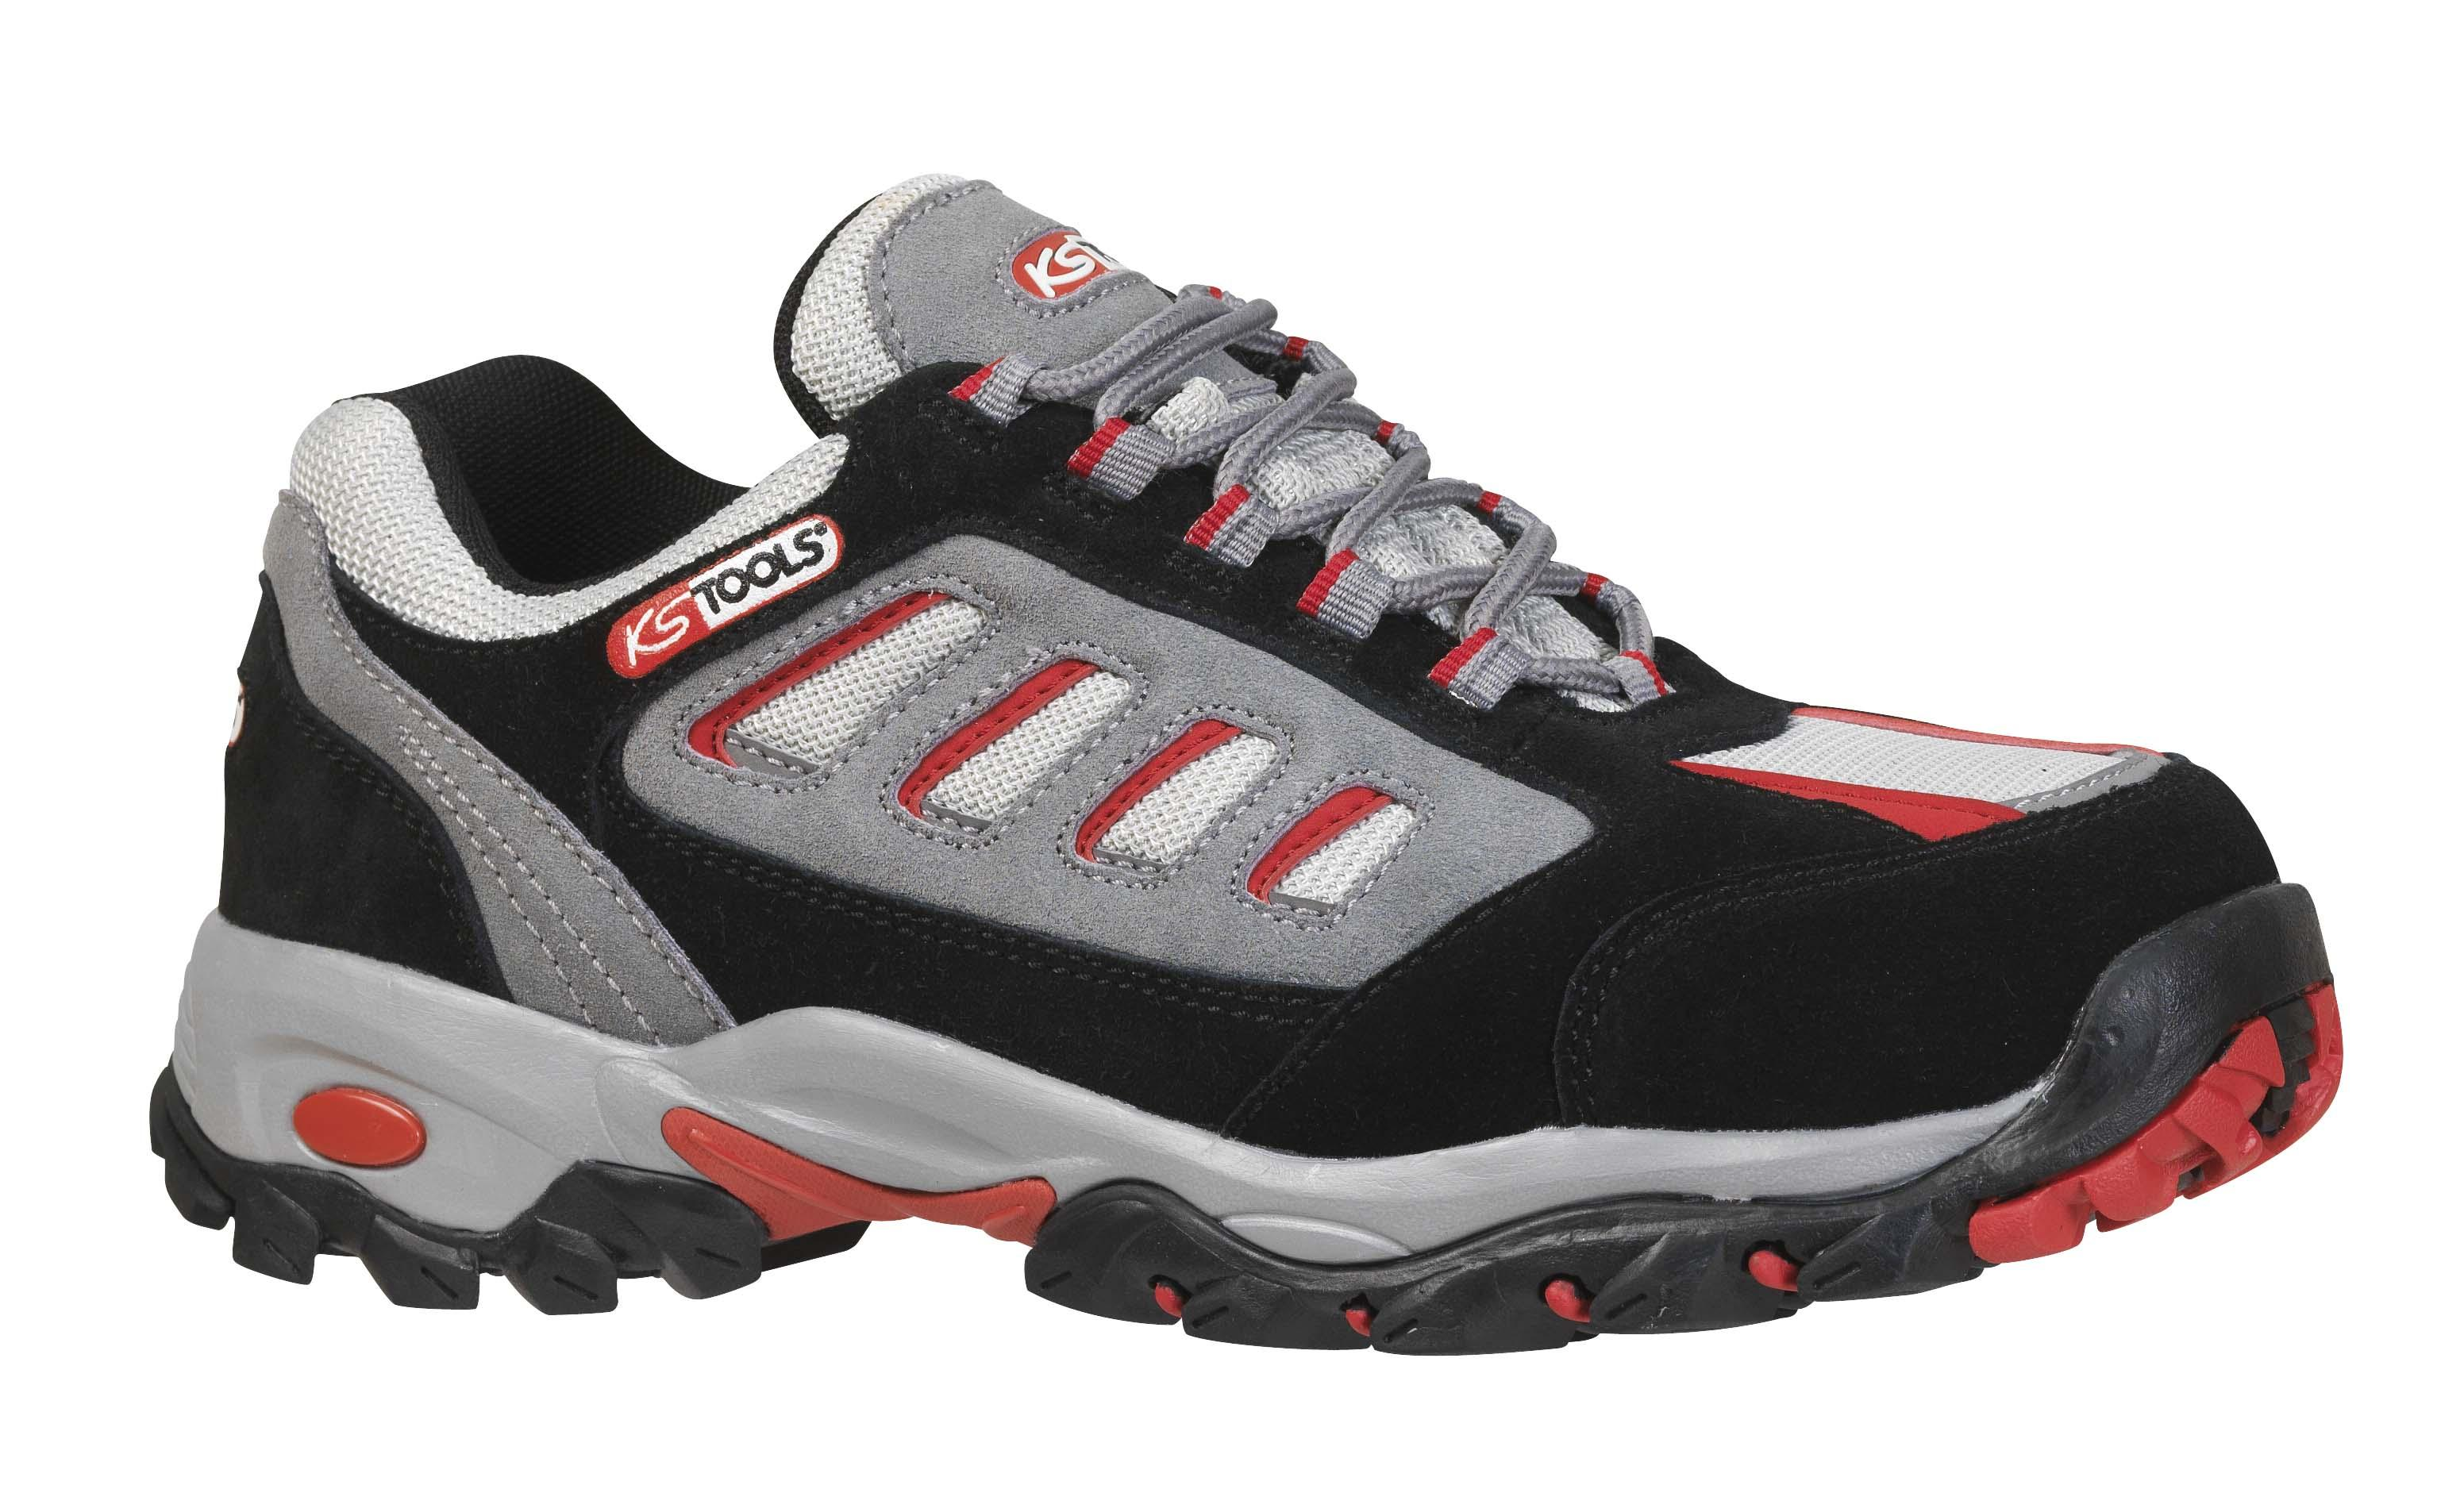 Chaussures Sport A Chaussures Roulettes Sport 2000 2000 Roulettes A Chaussures wvnN80m